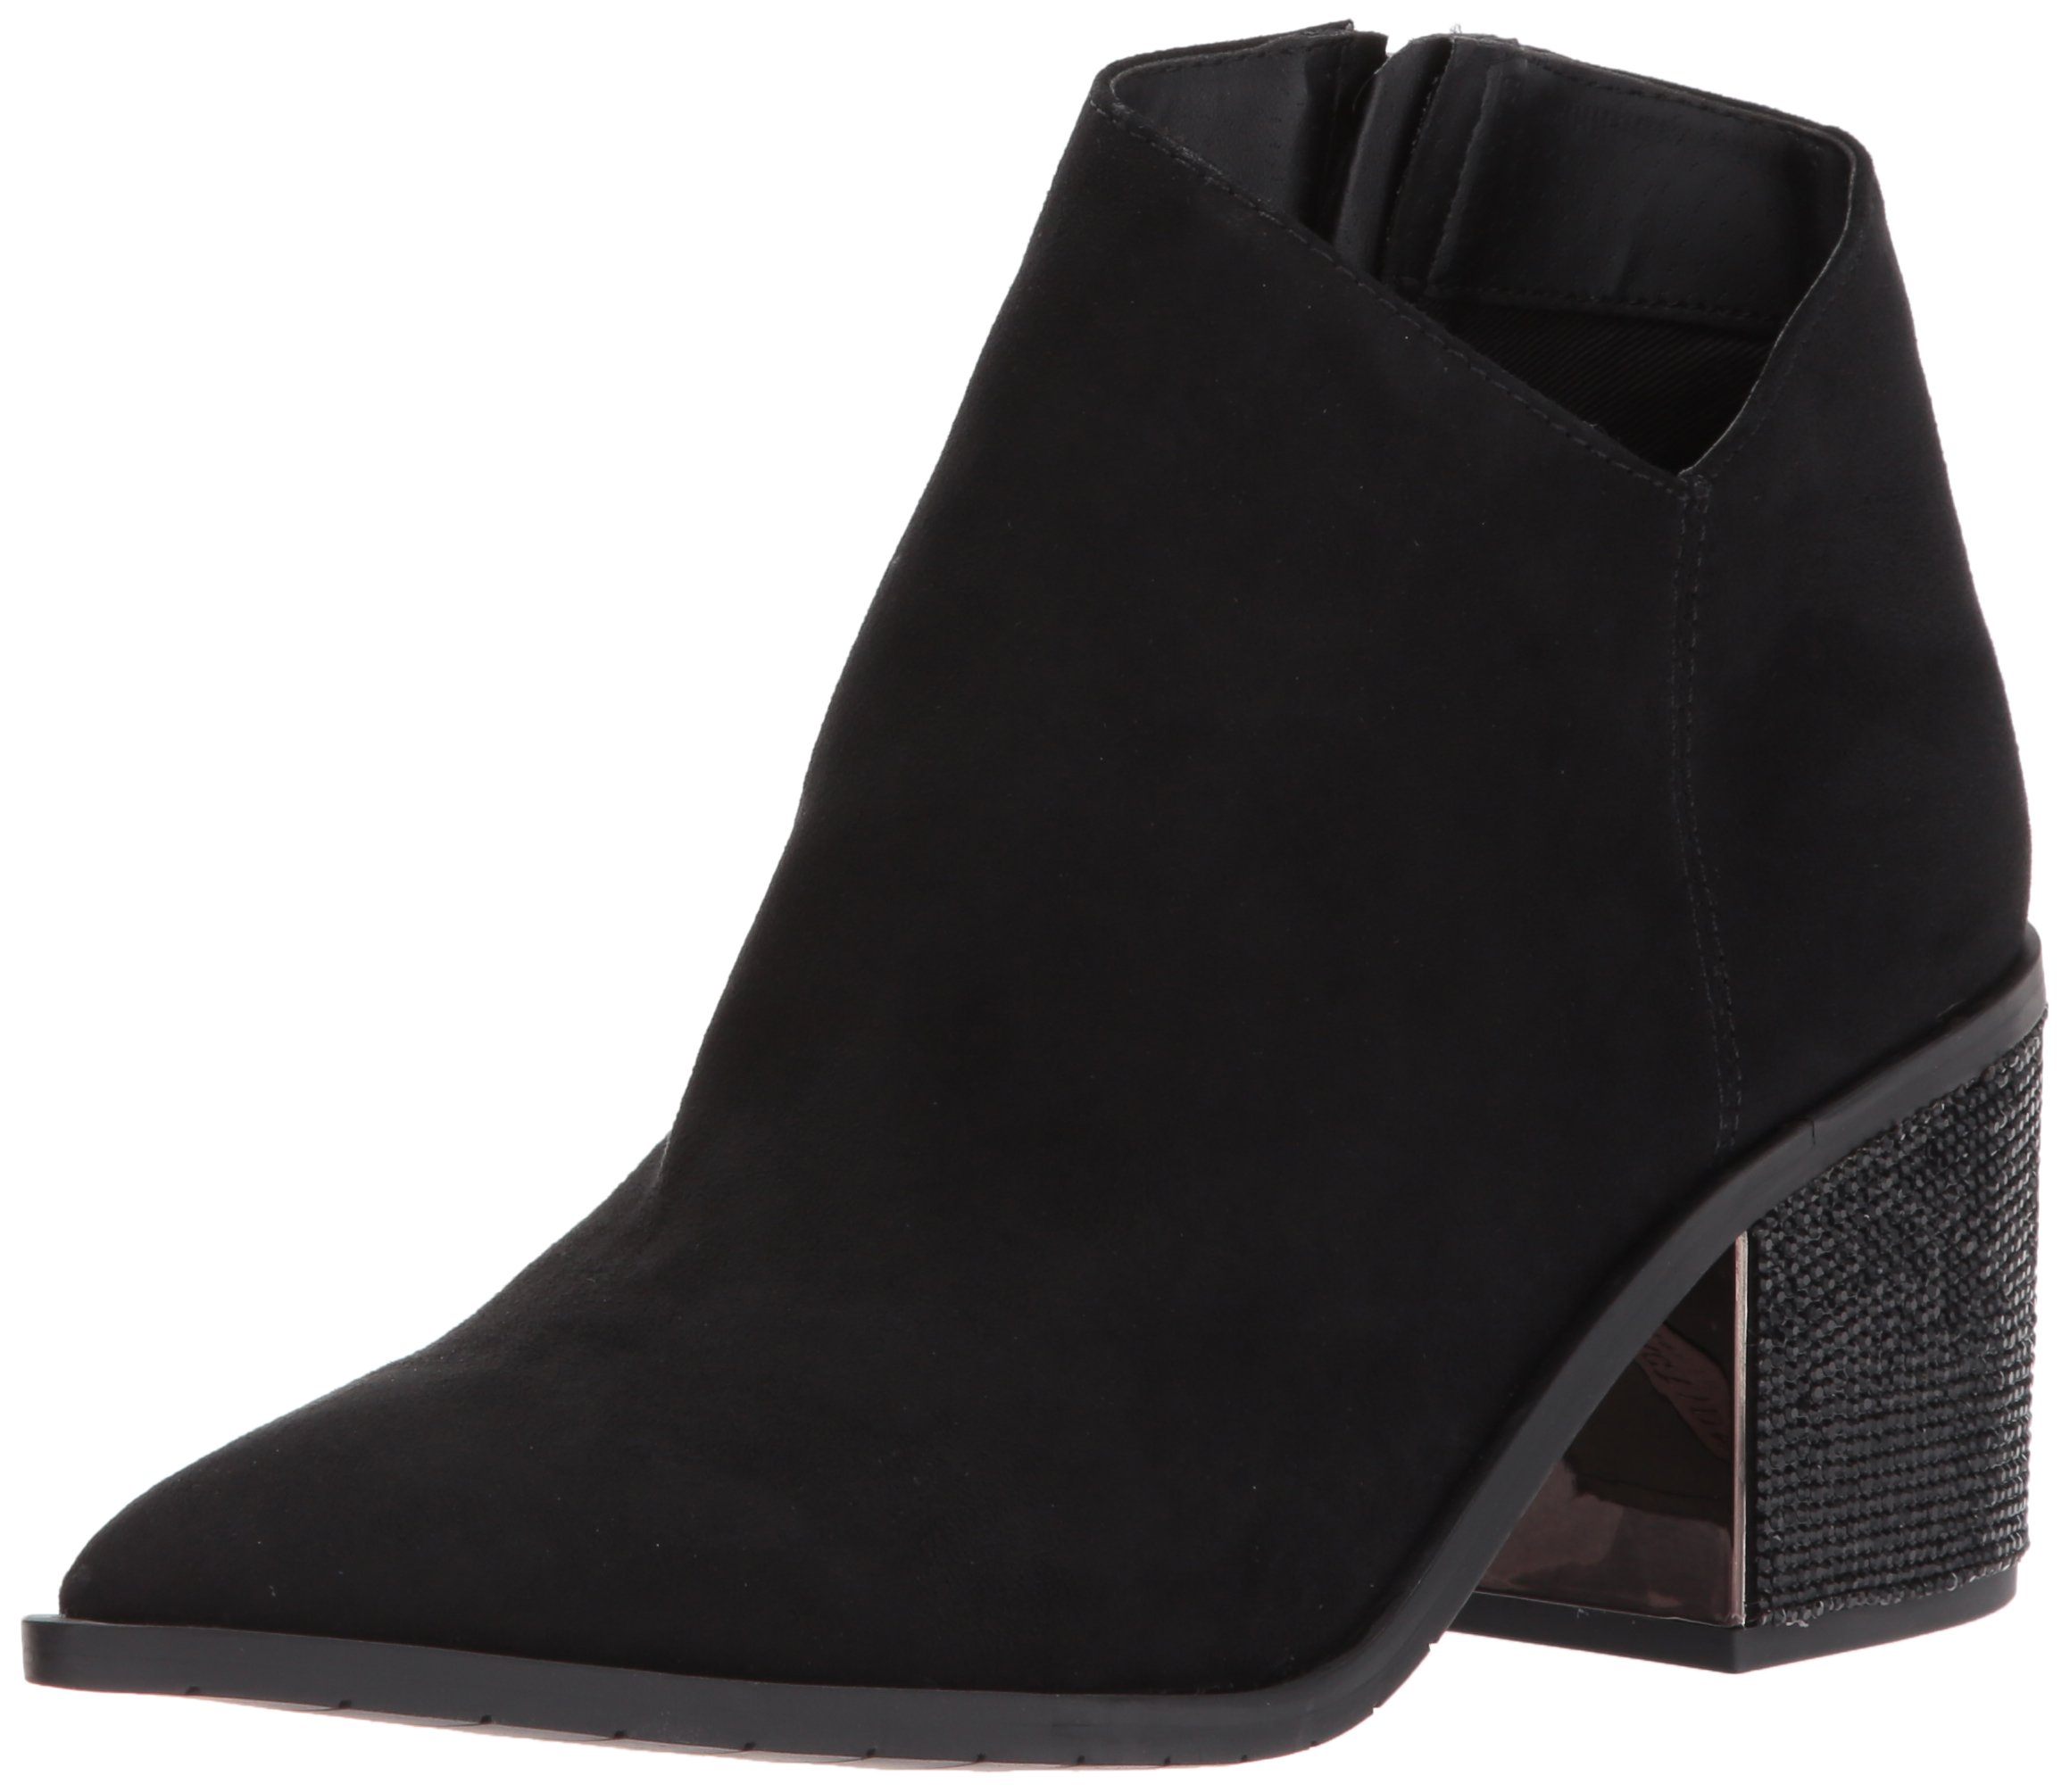 Kenneth Cole REACTION Women's Cue The Music Notch Western Style Micro Ankle Bootie, Black, 7.5 M US by Kenneth Cole REACTION